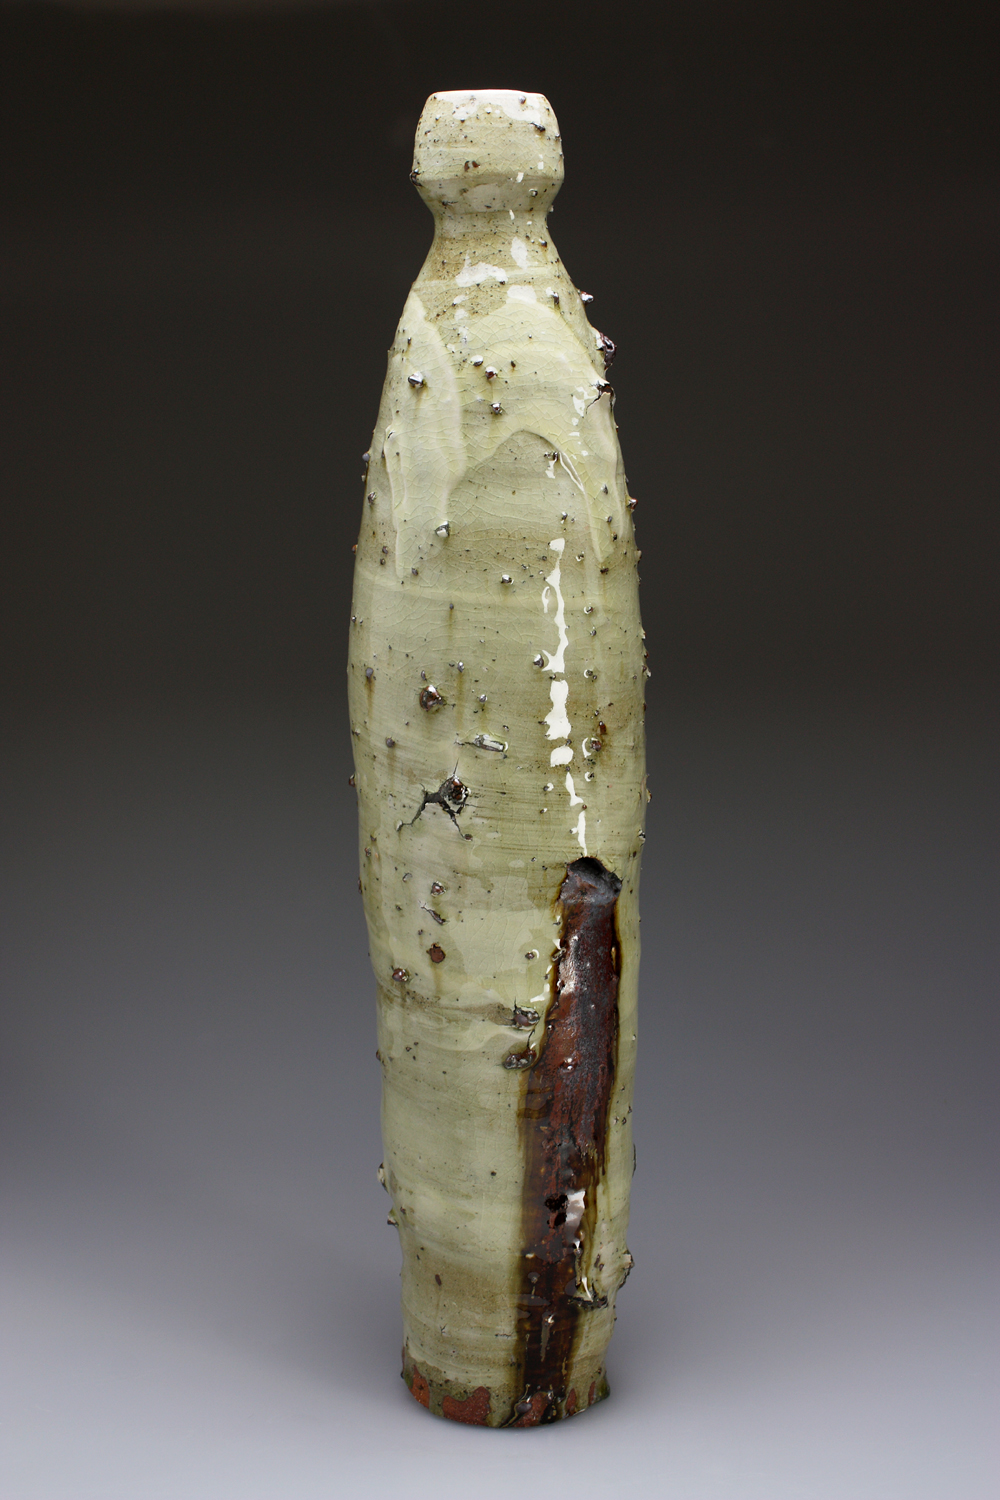 Tall Bottle Form